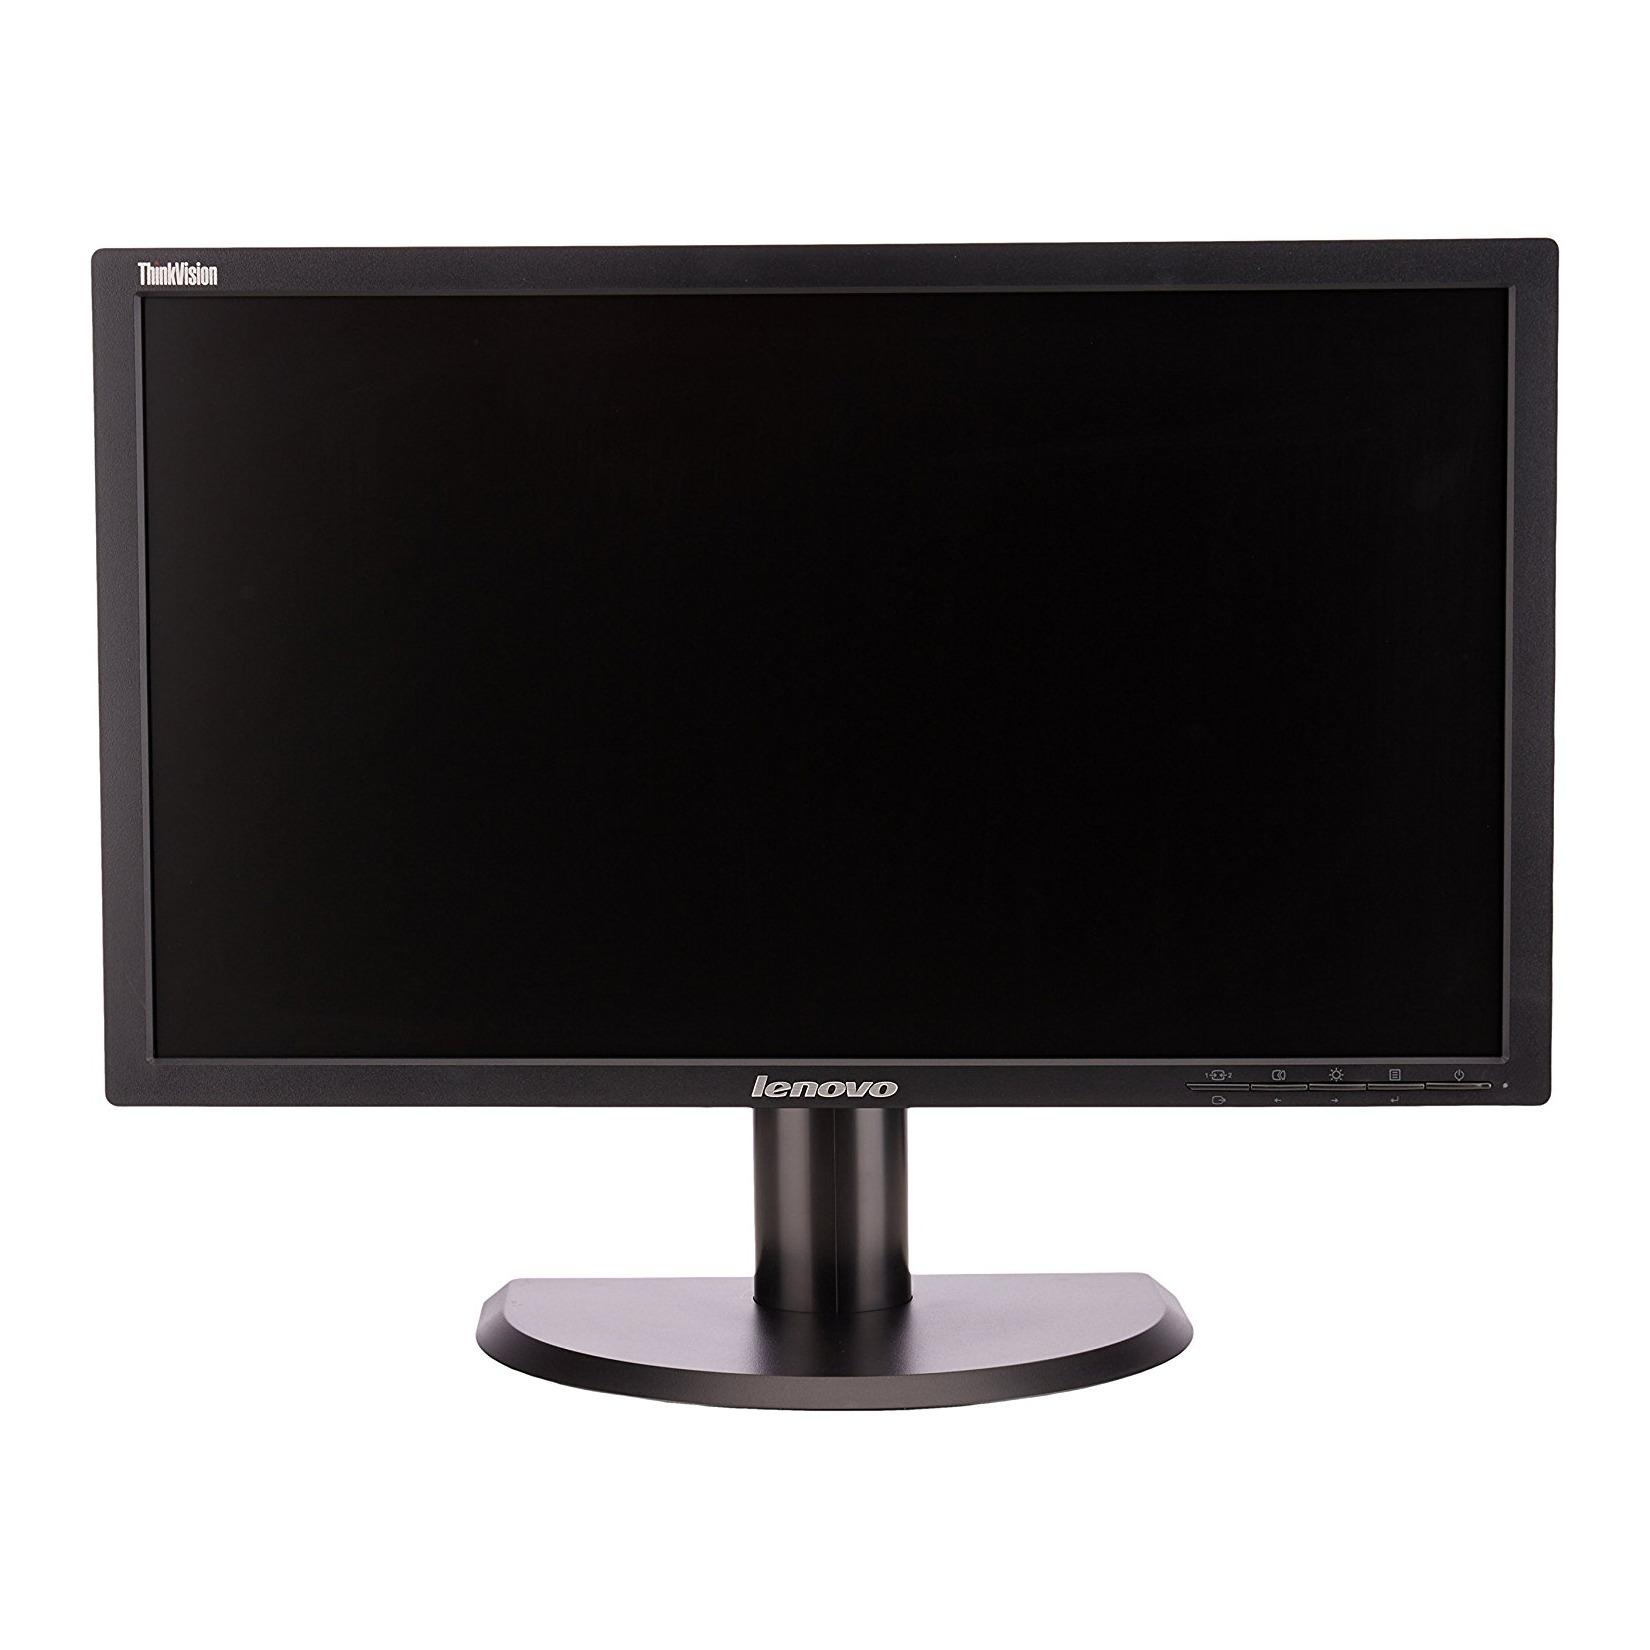 Lenovo Thinkvision Lt2223P 21 5 Inch Fhd Led Backlit Lcd Monitor Refurbished Lenovo Discount